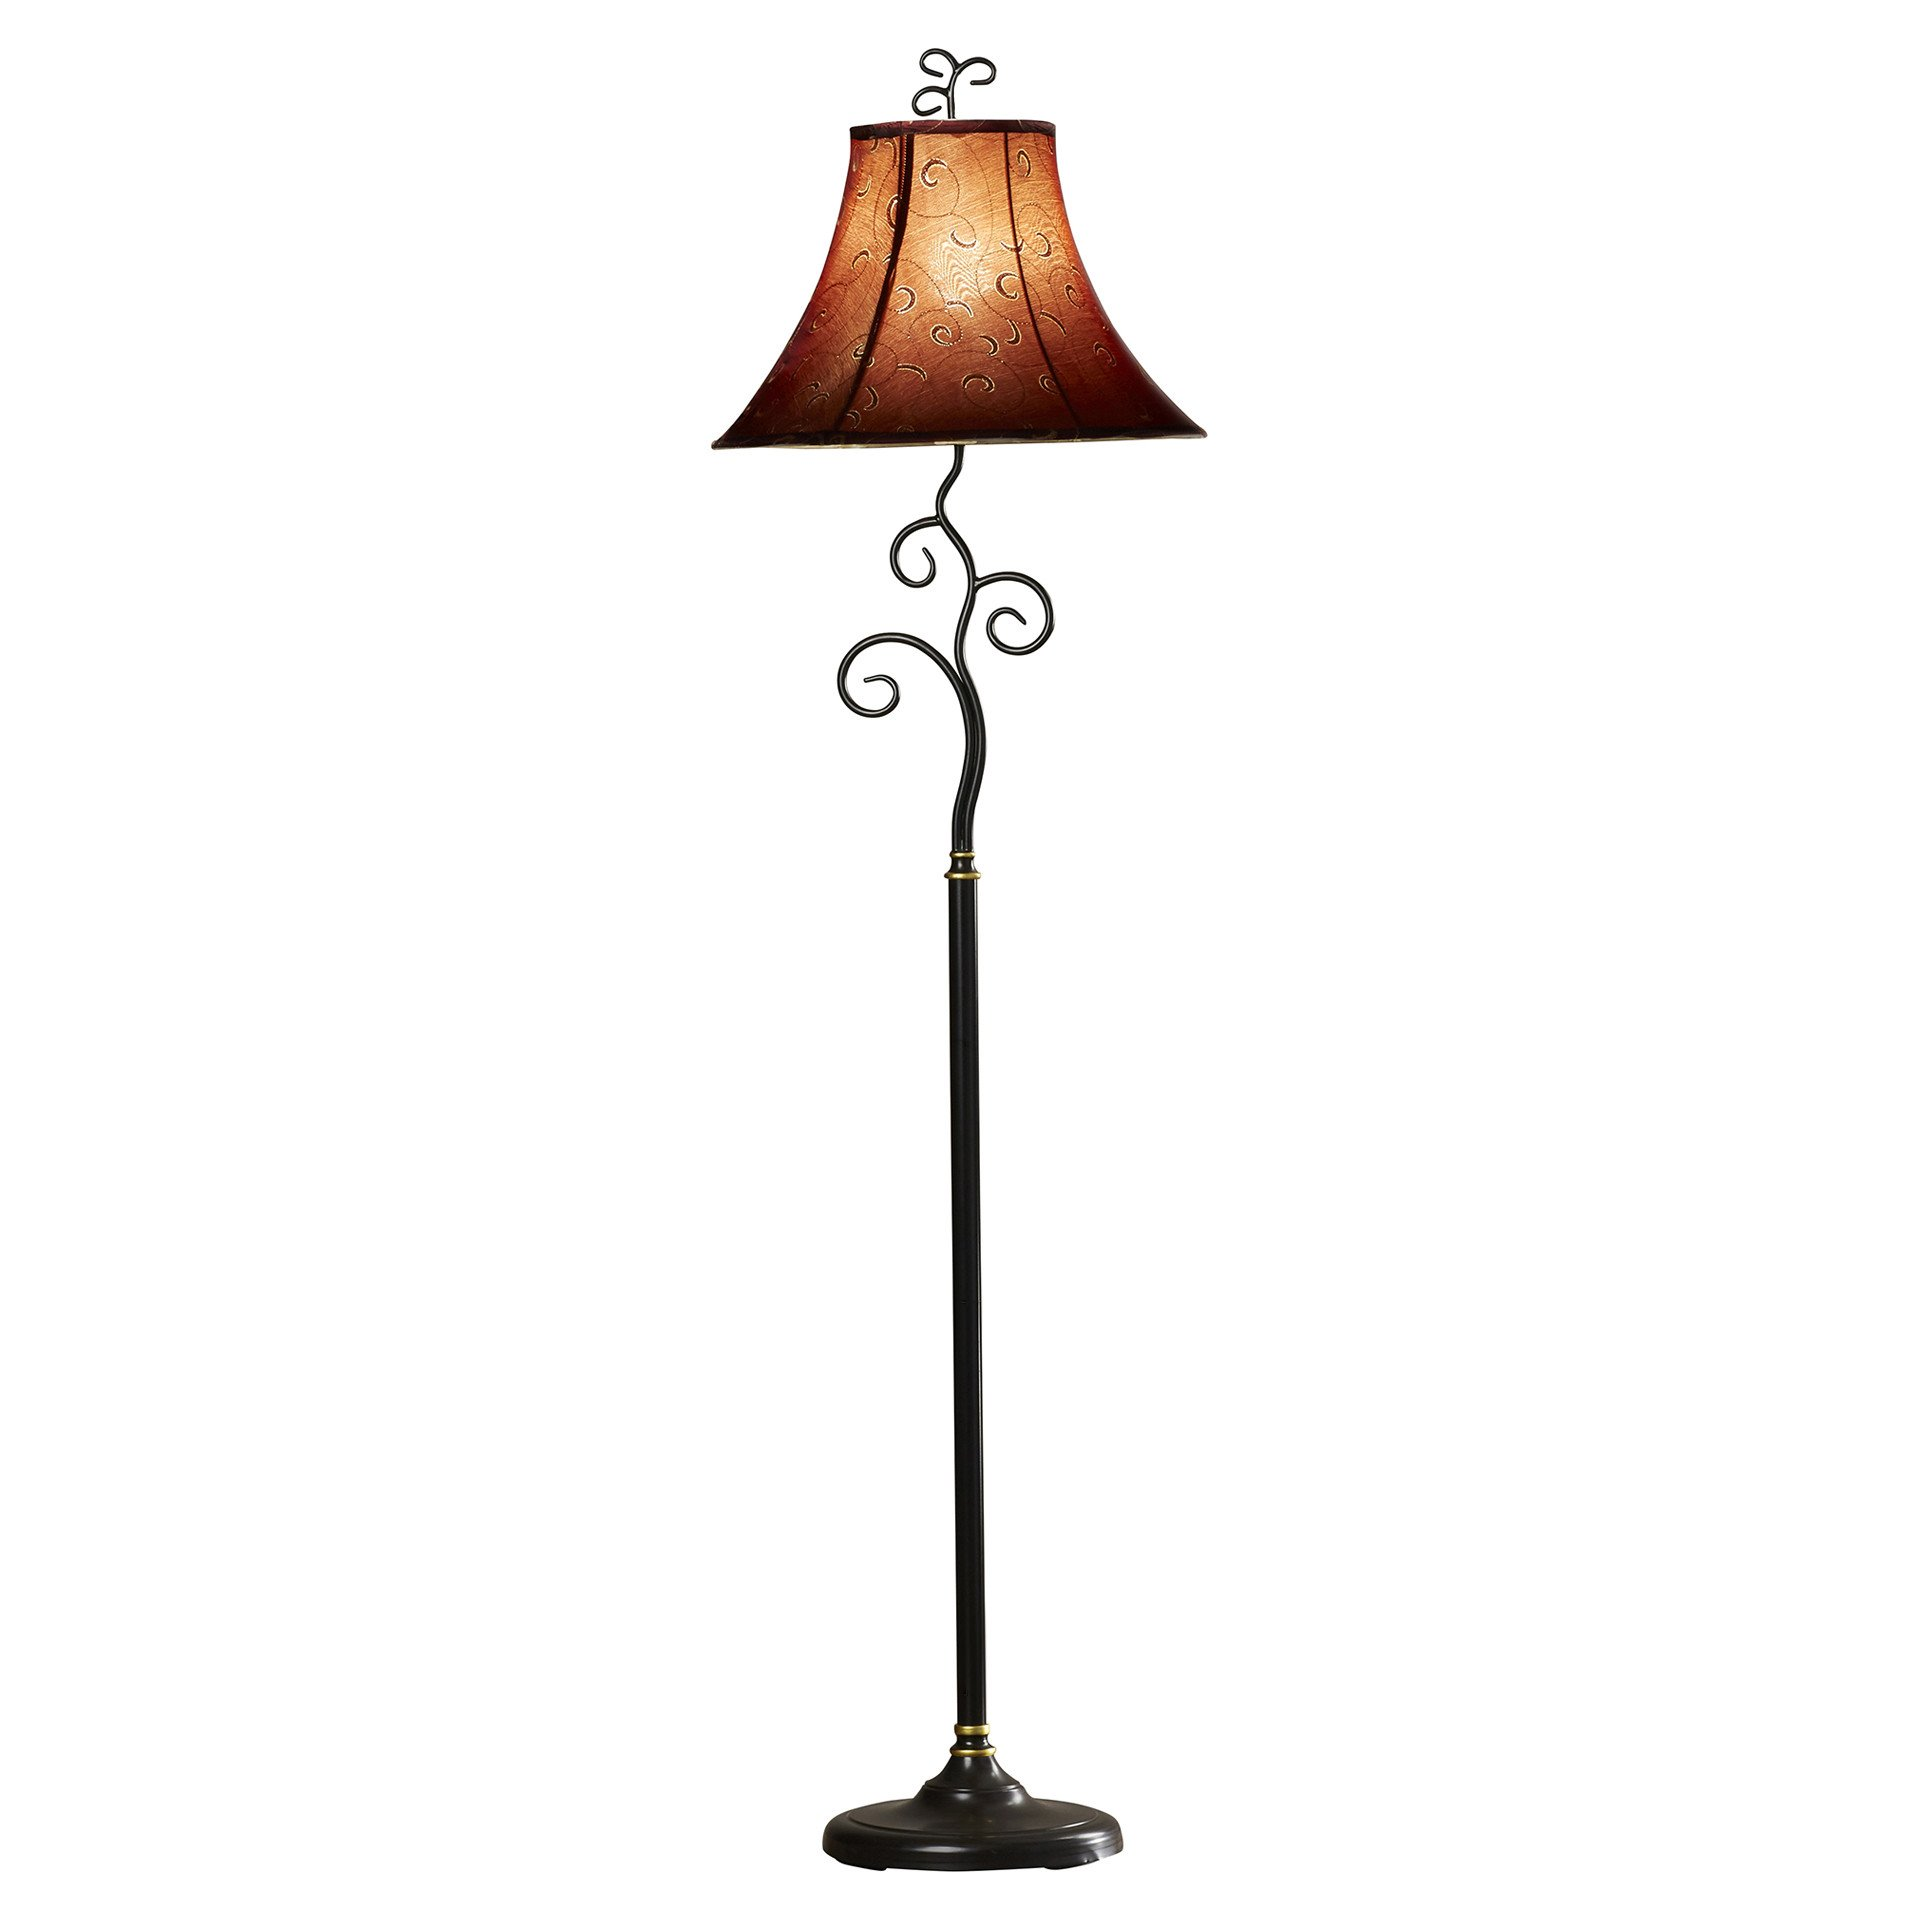 61 Inch Whimsical Bronze Finish Floor Lamp with Cranberry / Gold Thread Bell Shade For Living Room